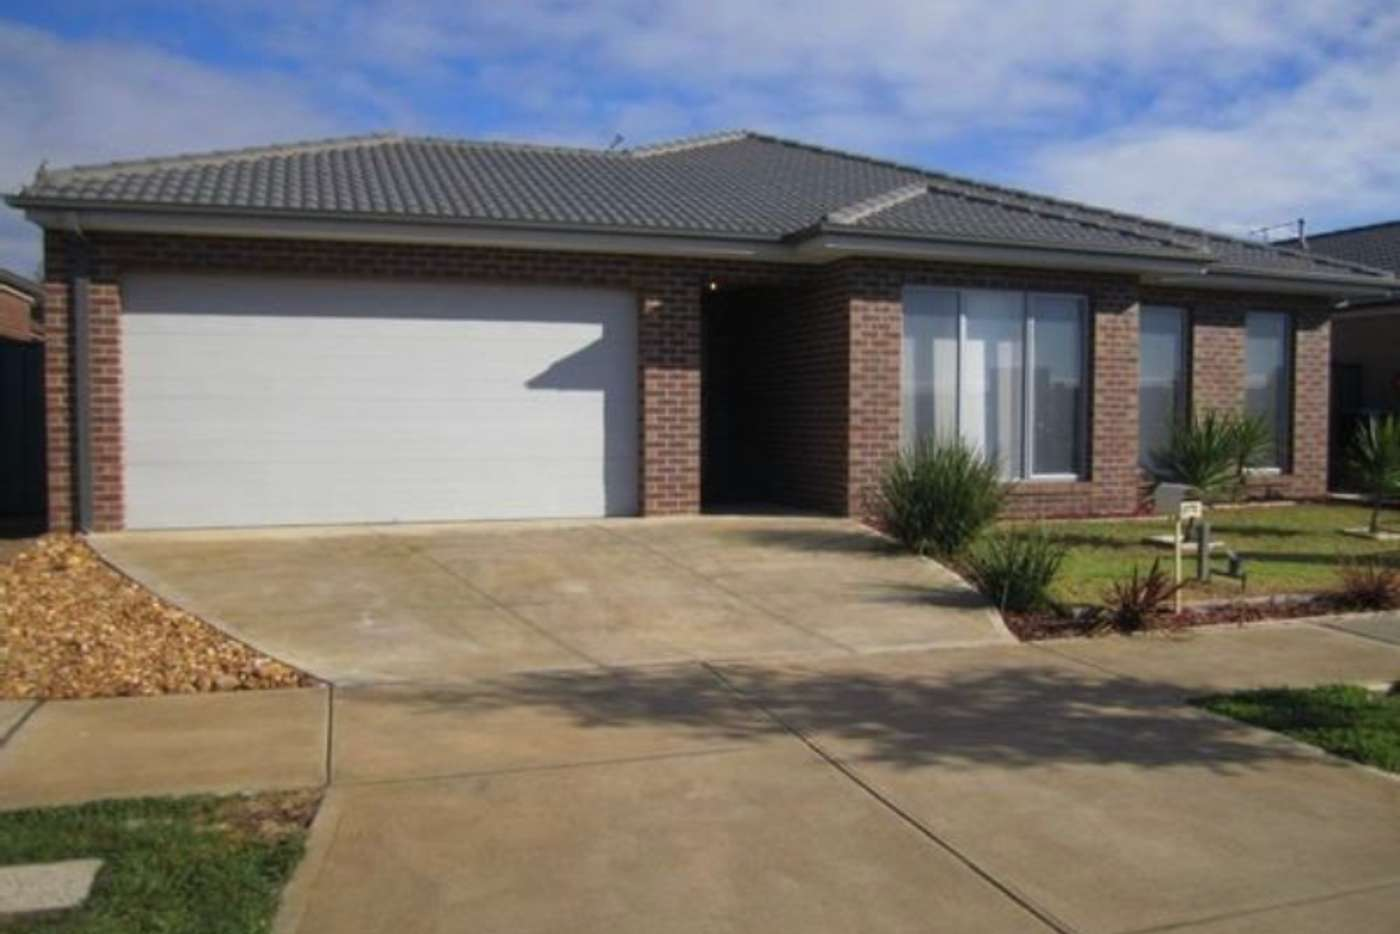 Main view of Homely house listing, 872 Tarneit Road, Tarneit VIC 3029